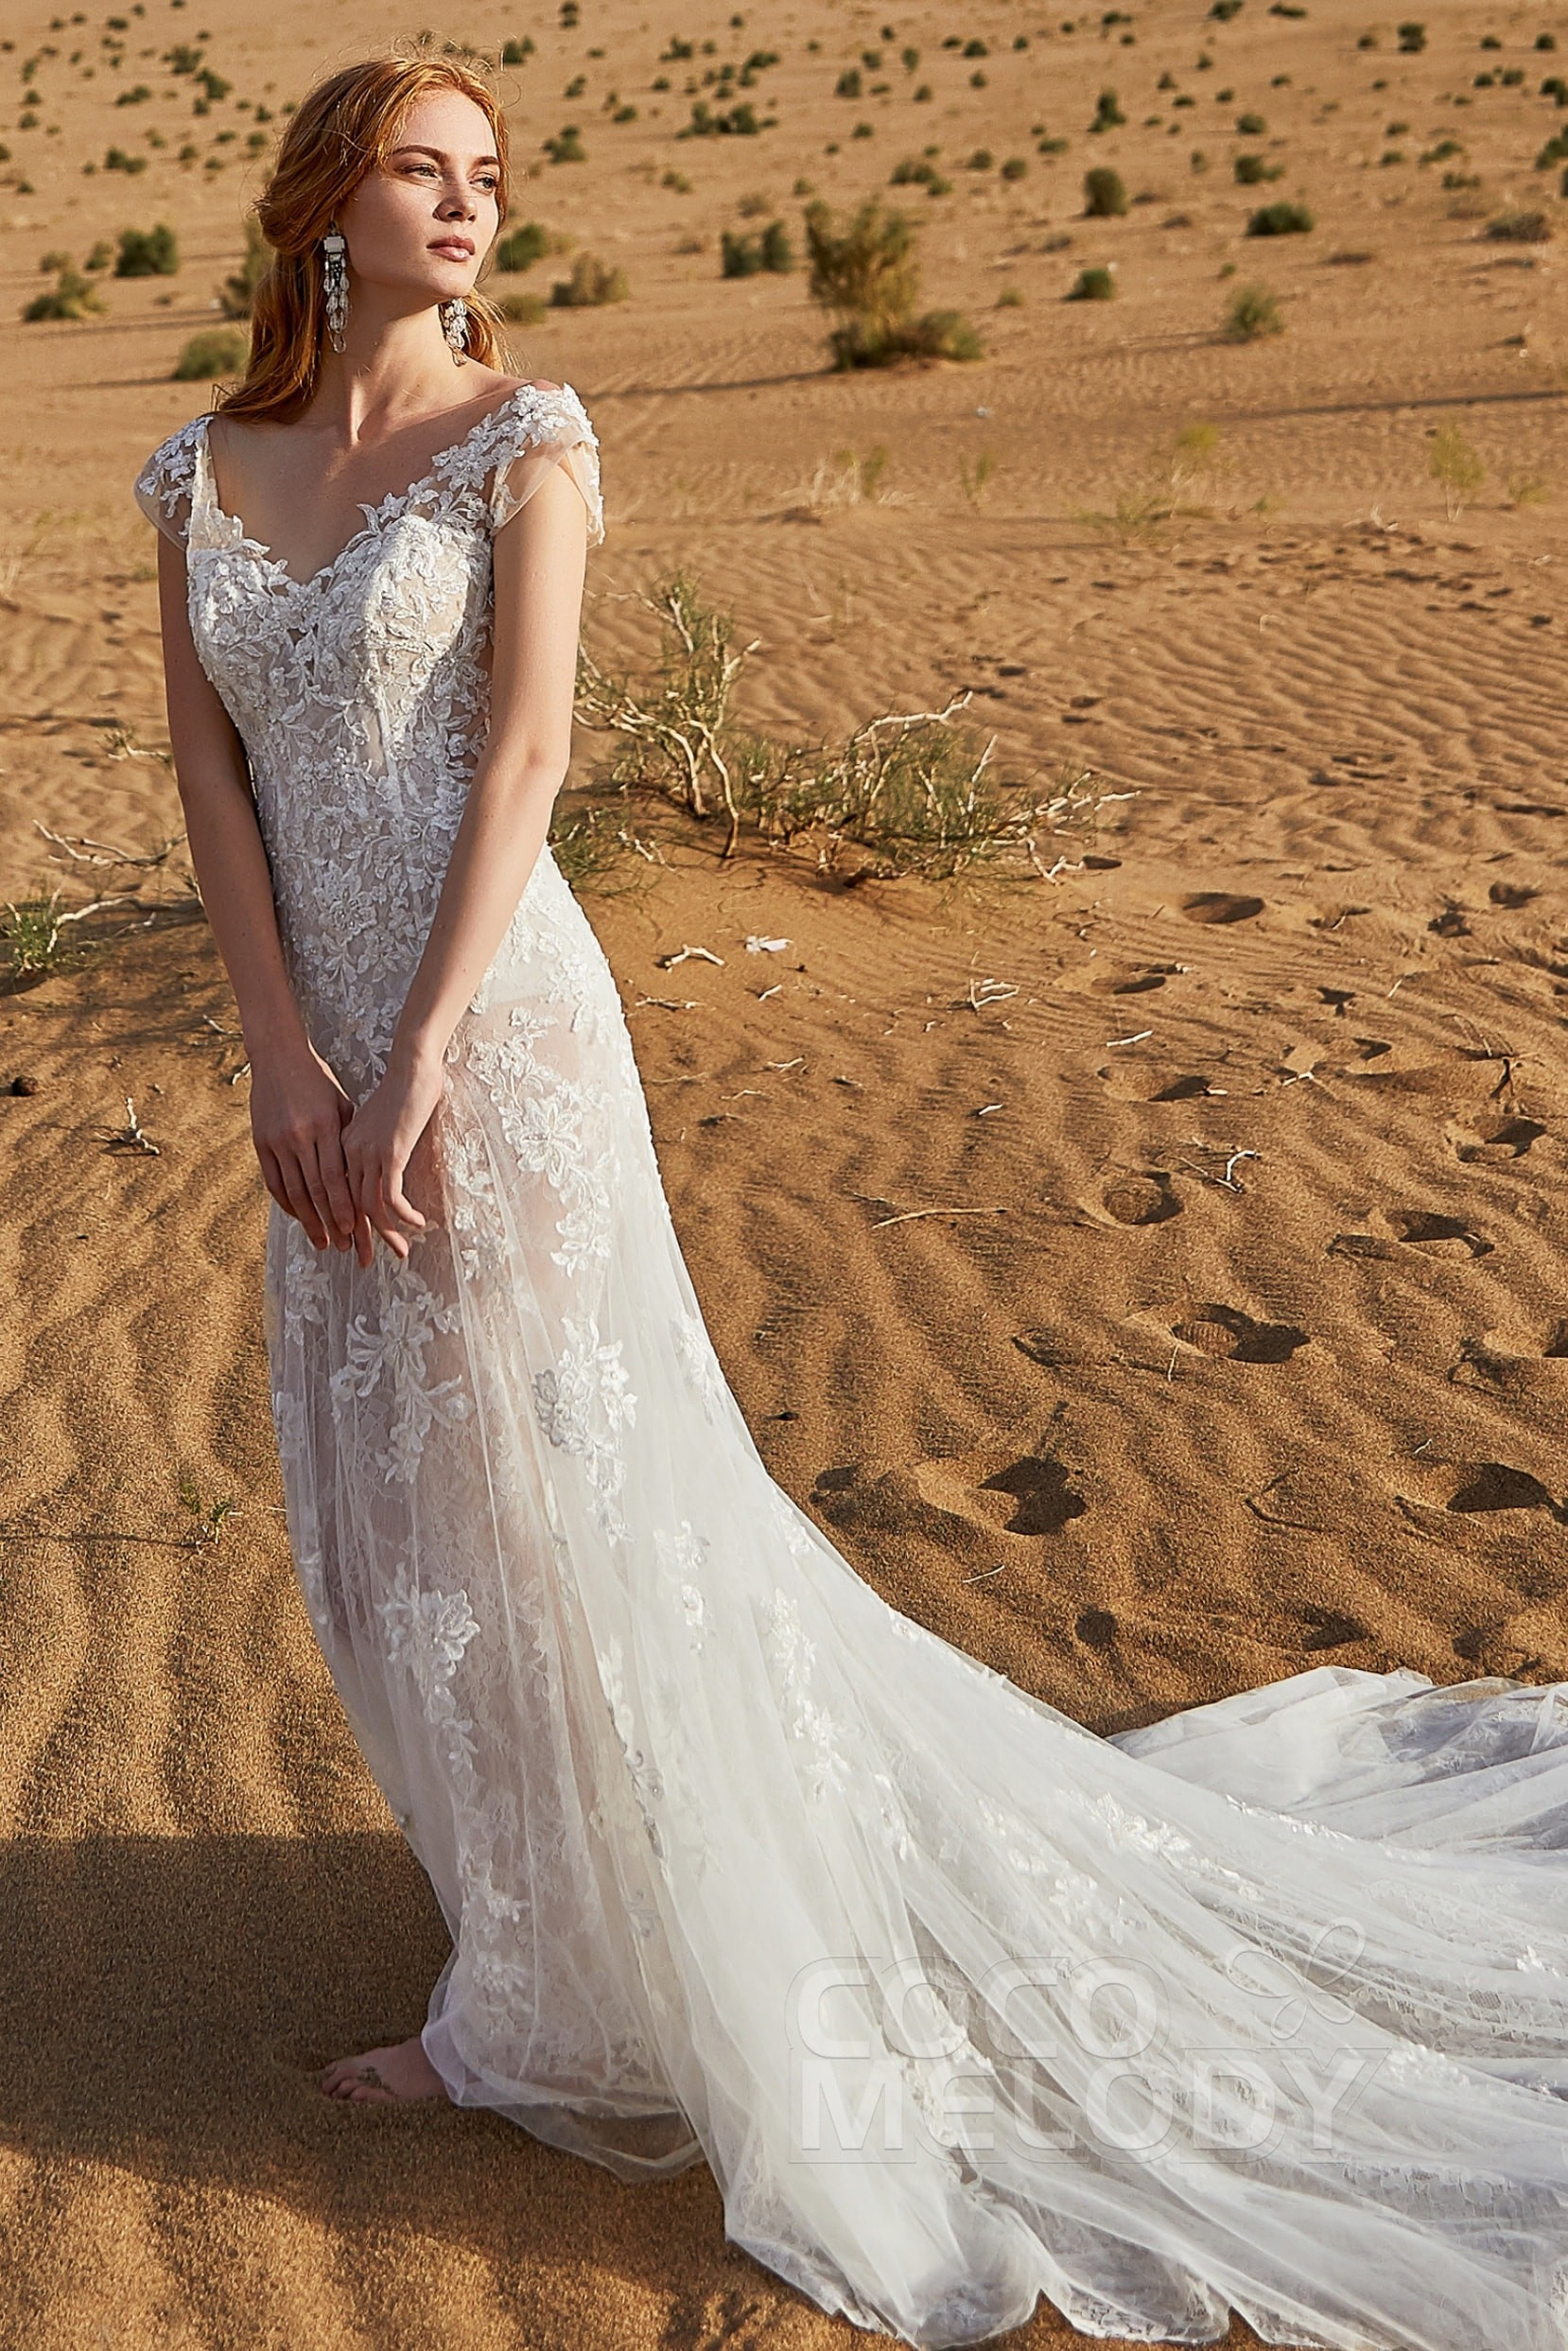 929c4d308f125 Trumpet-Mermaid Train Cap Sleeve Wedding Dress LD5809 | Cocomelody